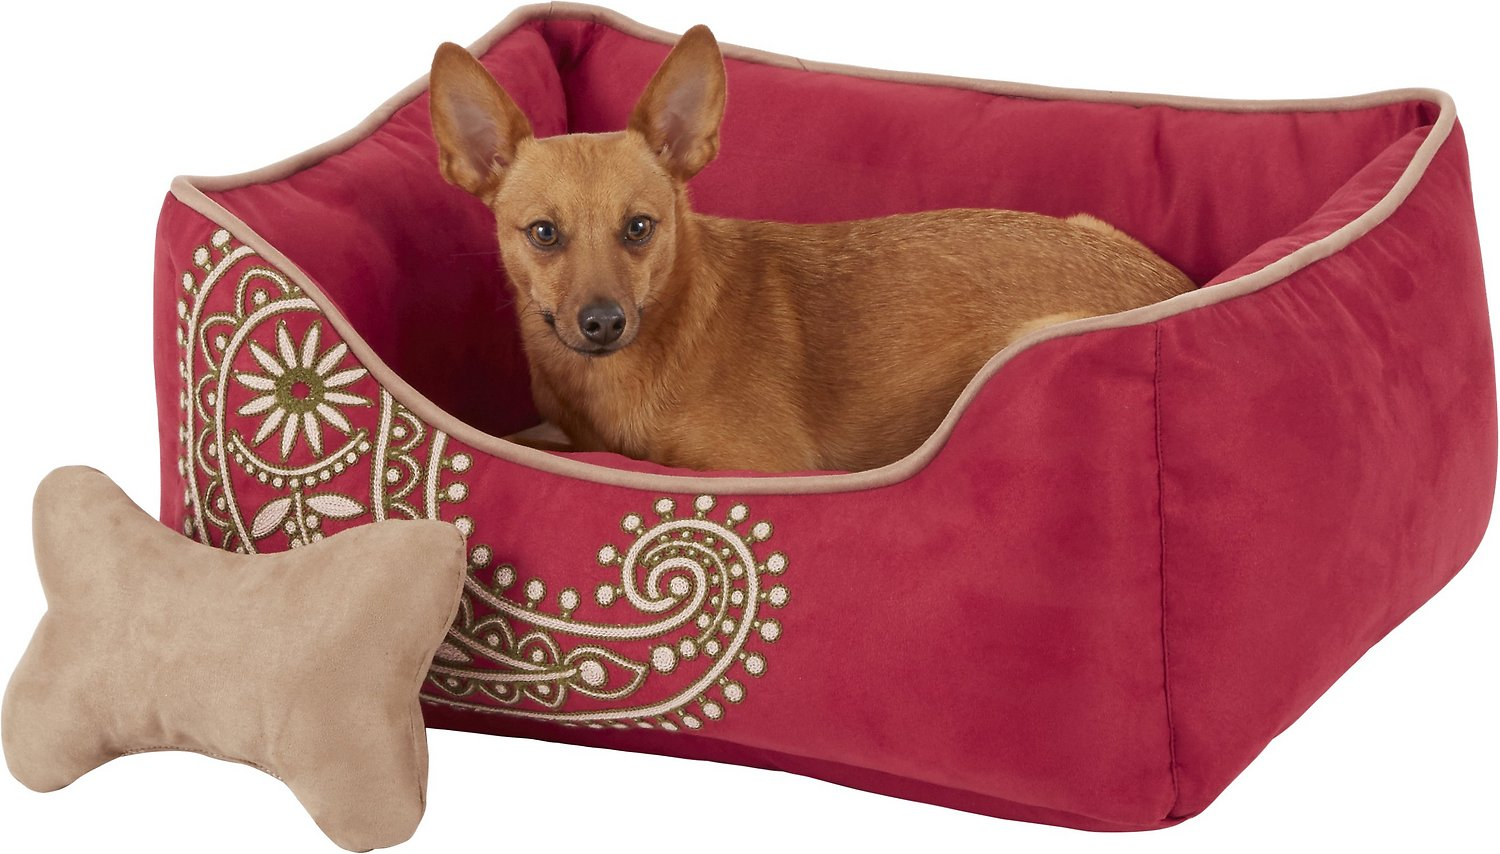 Blueberry Pet Inspired Embroidery Paisley Dog Bed